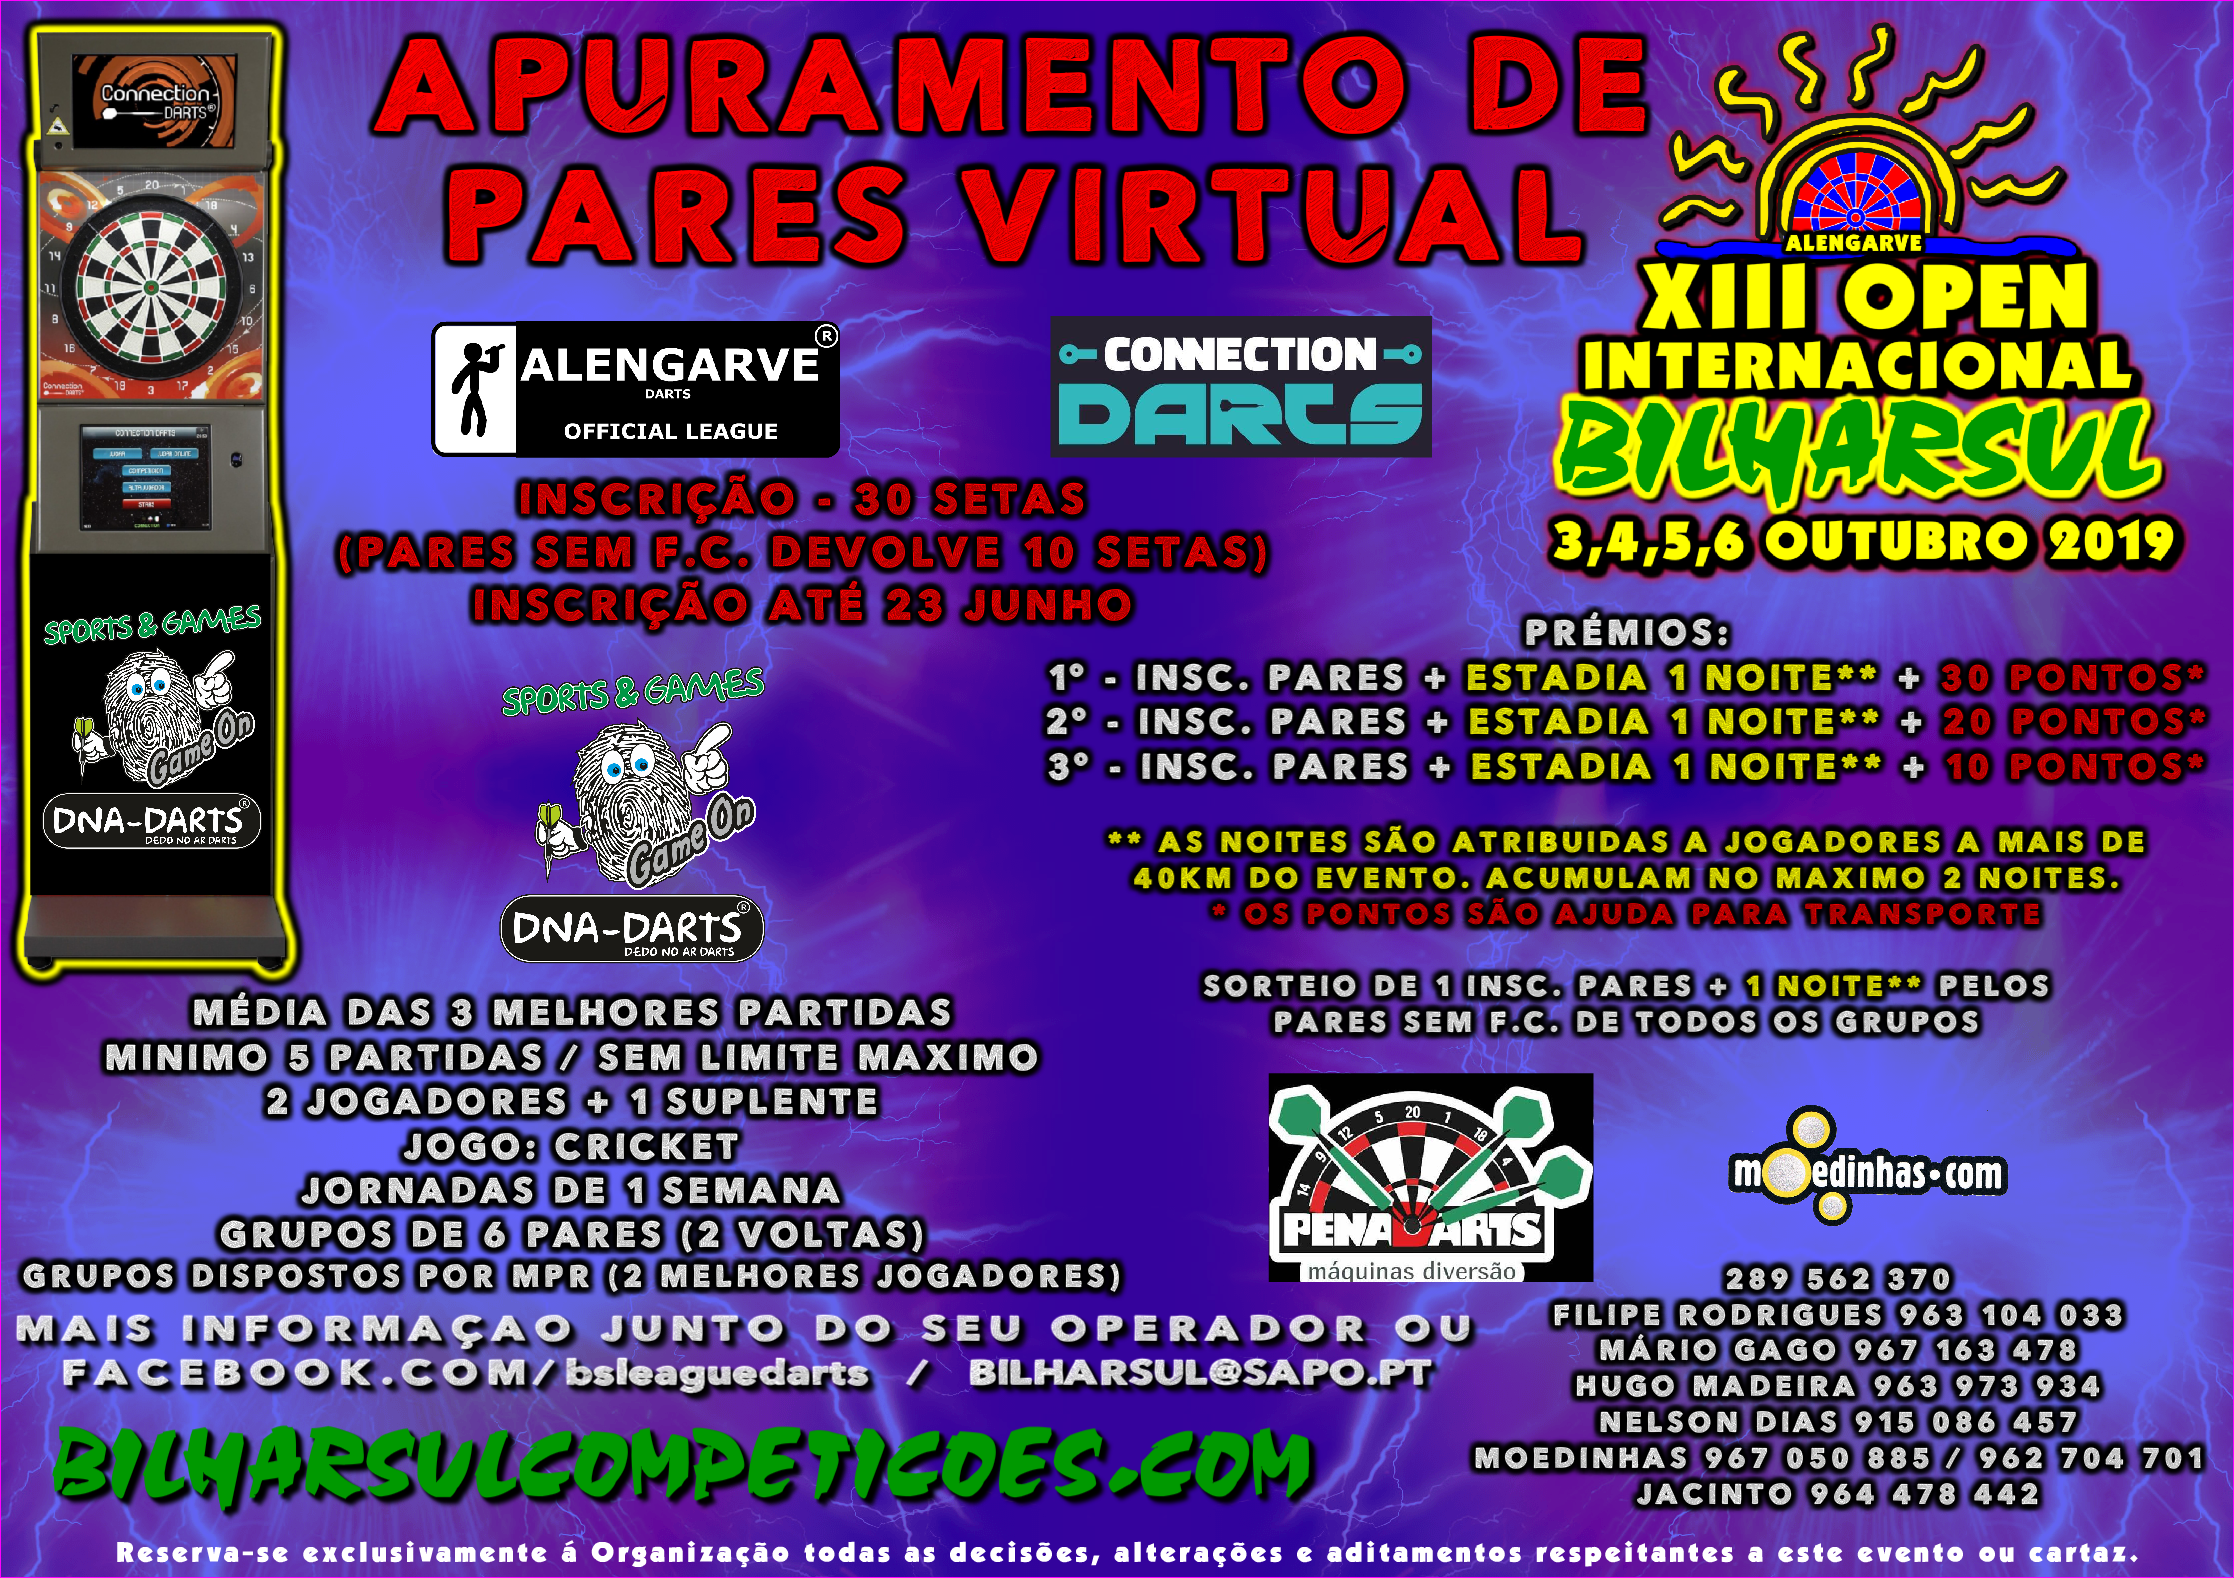 APURAMENTO DE PARES VIRTUAL – XIII OPEN INTERNACIONAL